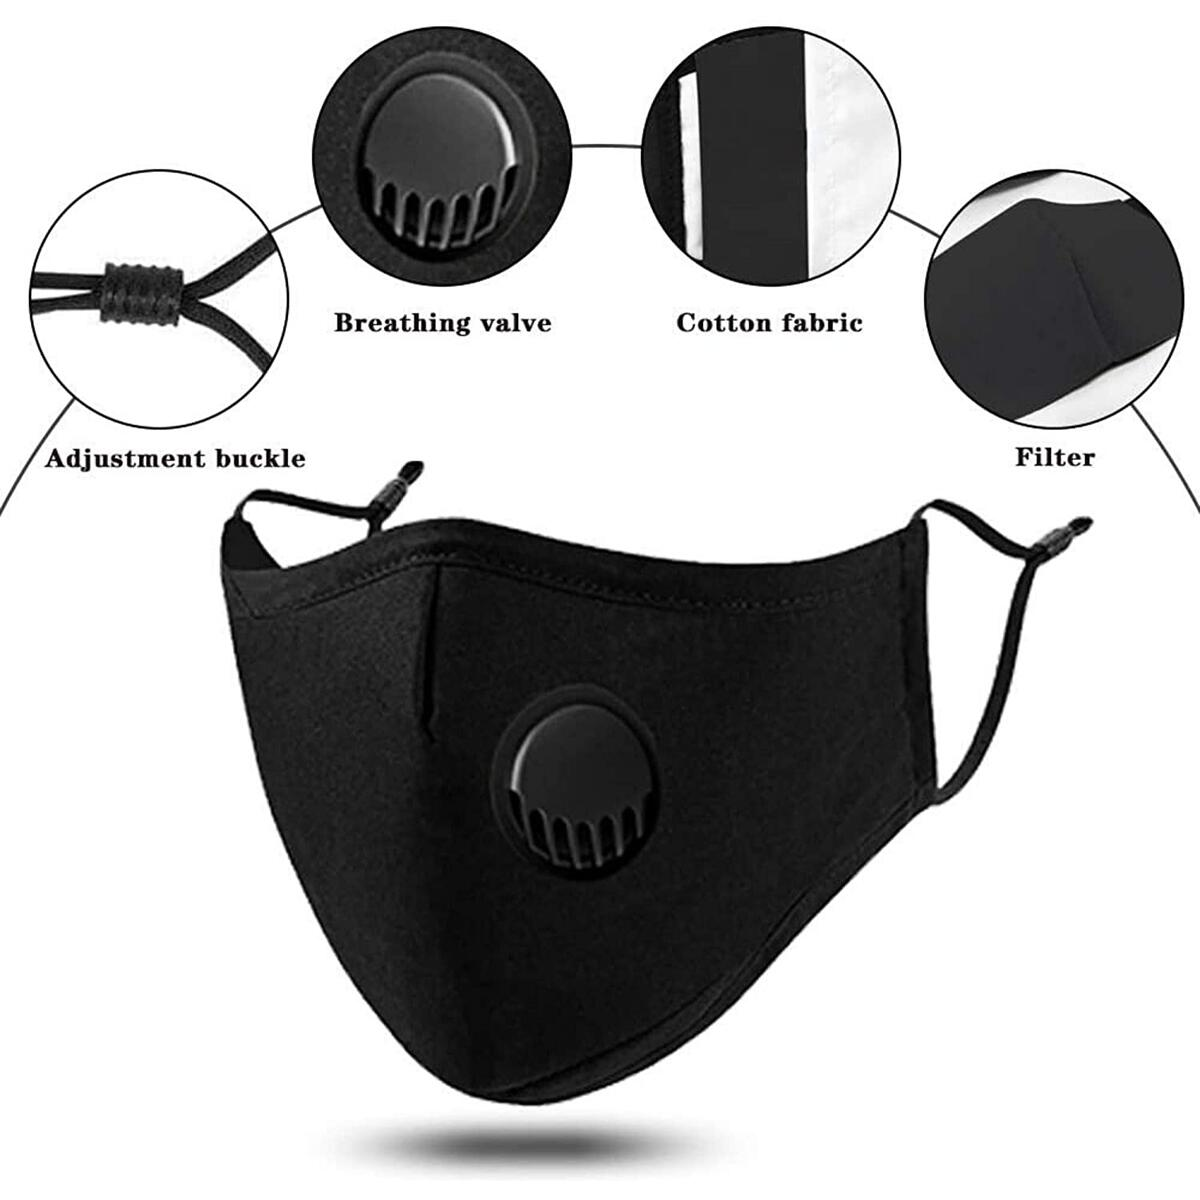 Face Mask With Breathing Valve, Washable Reusable Black Cotton Mouth Cover with PM2.5 Activated Carbon Filter, Unisex Face Masks Protection From Dust, Pollen, Comfortable to Wear